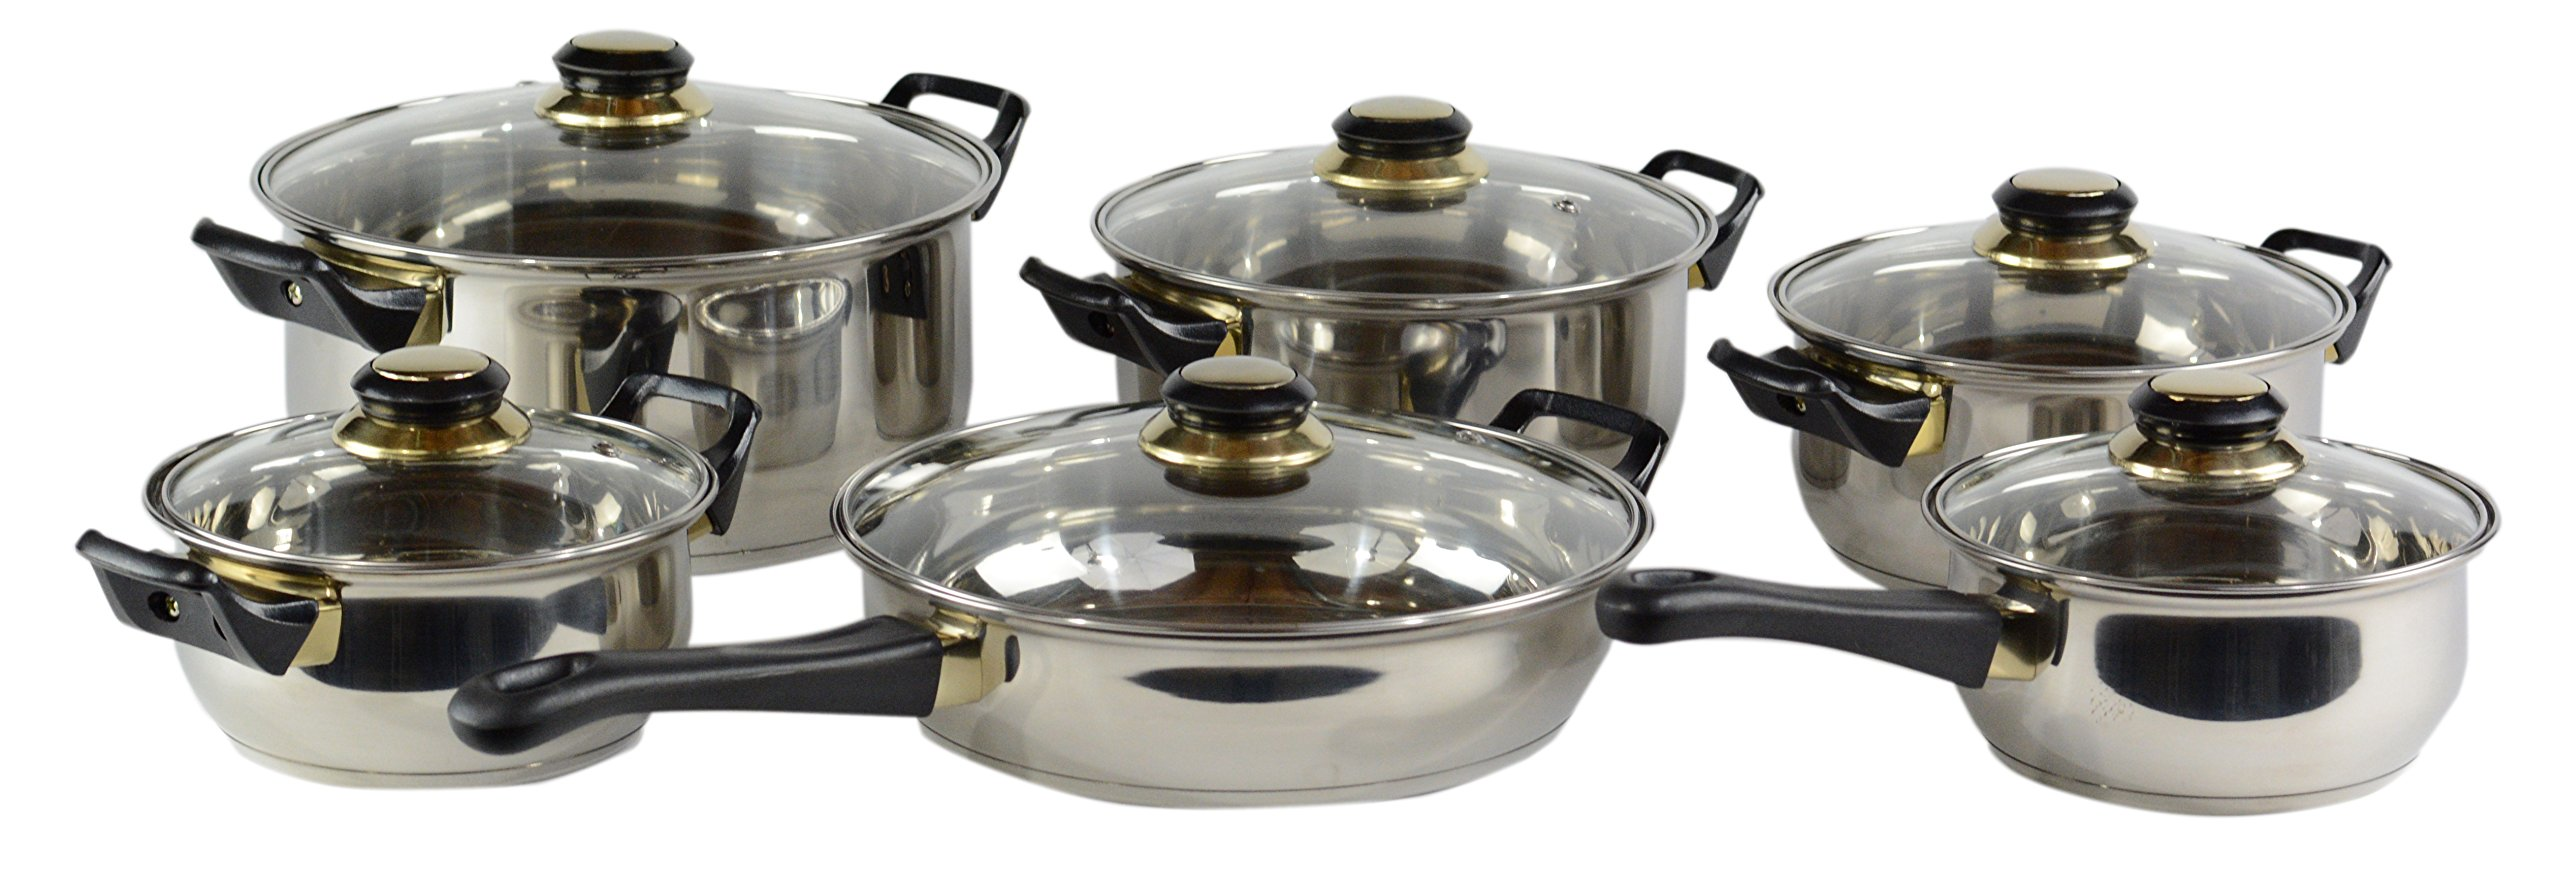 Gourmet Chef Professional, Stainless Steel, Encapsulated Base, Bakelite Handles, Vented Glass Lids, Pots and Pans Set Cookware Set, 12-Piece